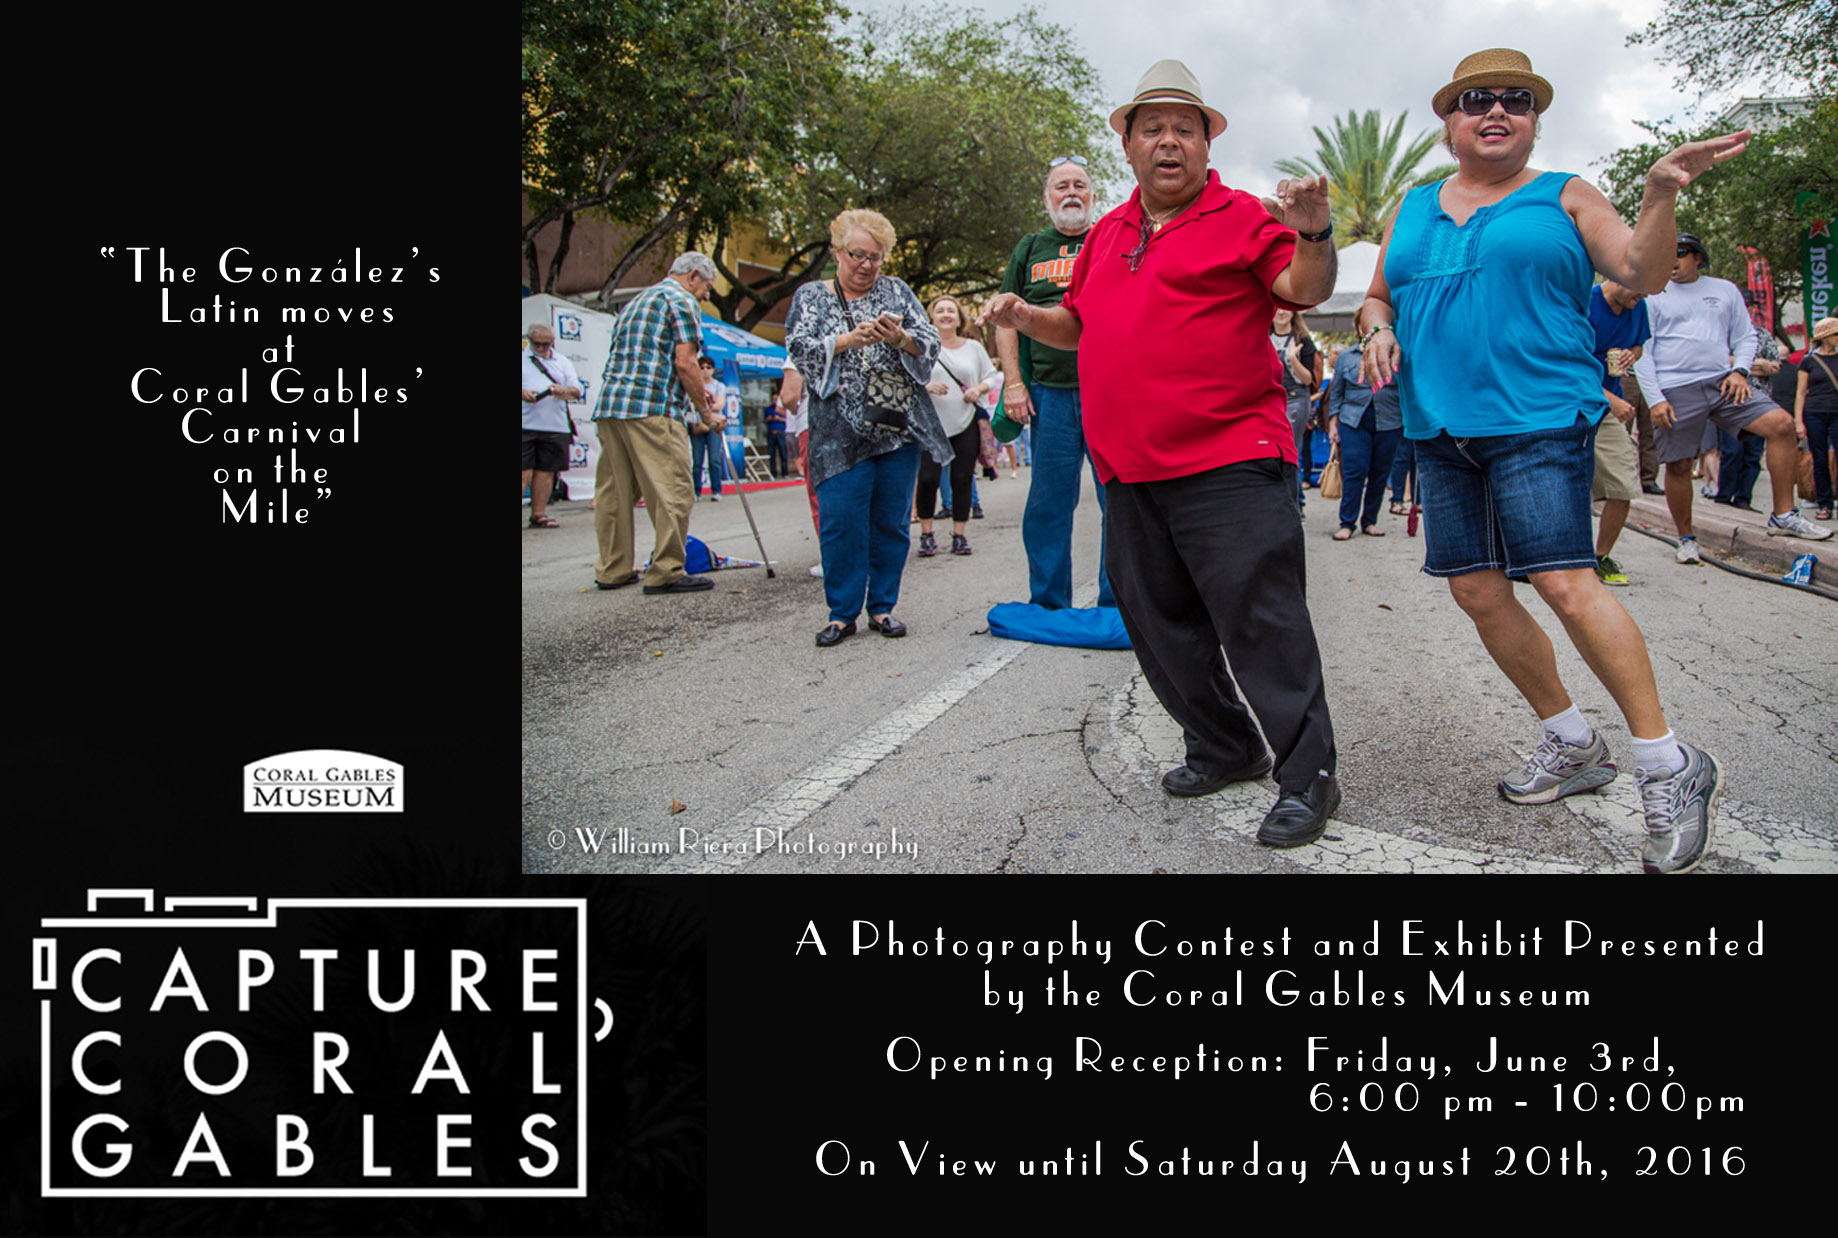 Capture Coral Gables 2016     Finalist , Juried Photography Exhibit Coral Gables Museum. June 5th to August 29th, 2016. Coral Gables, Florida.